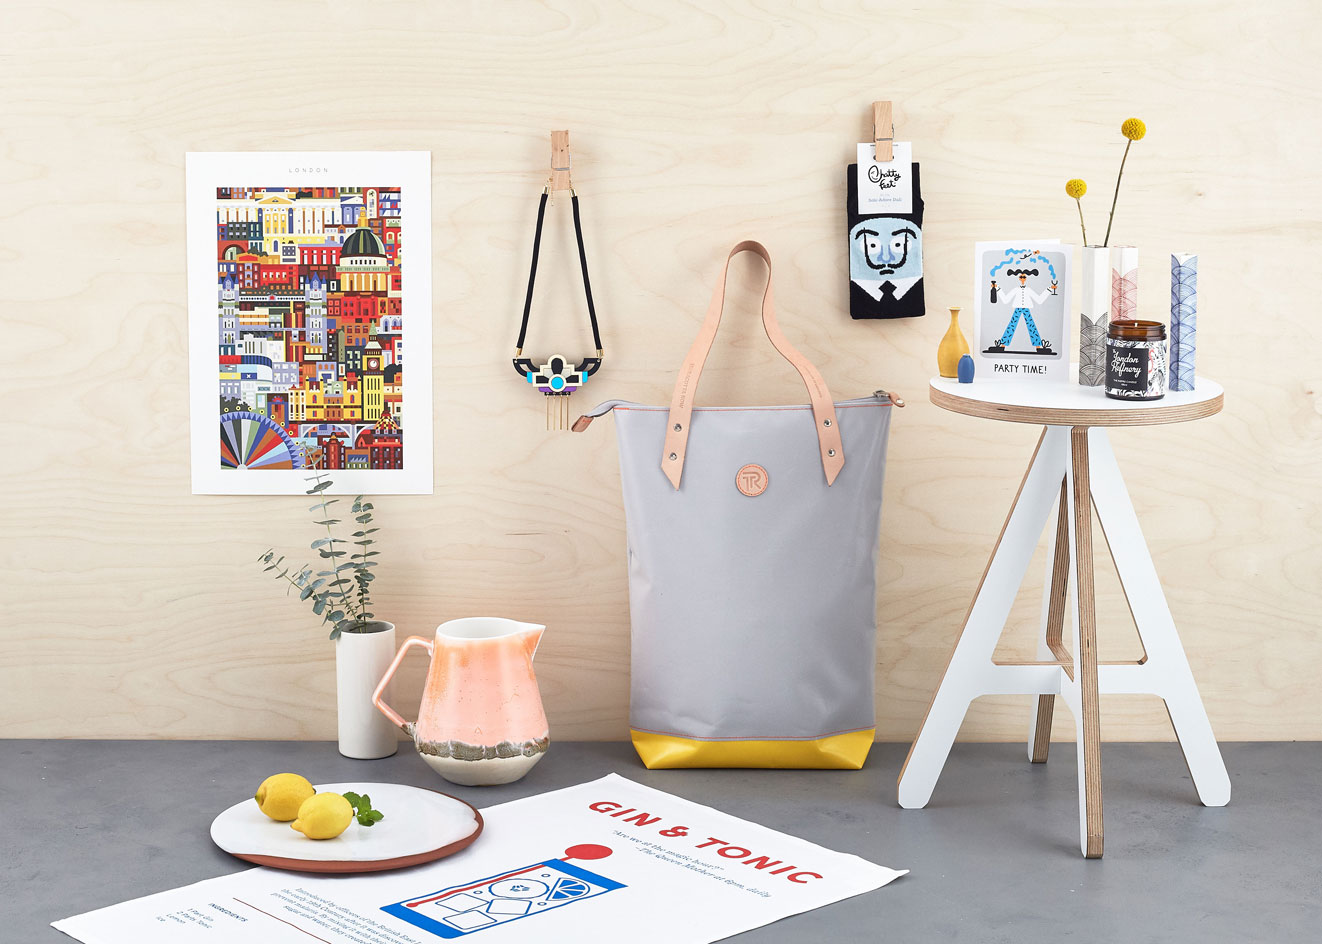 Stand Out Designs : In the frame standout designs from around globe